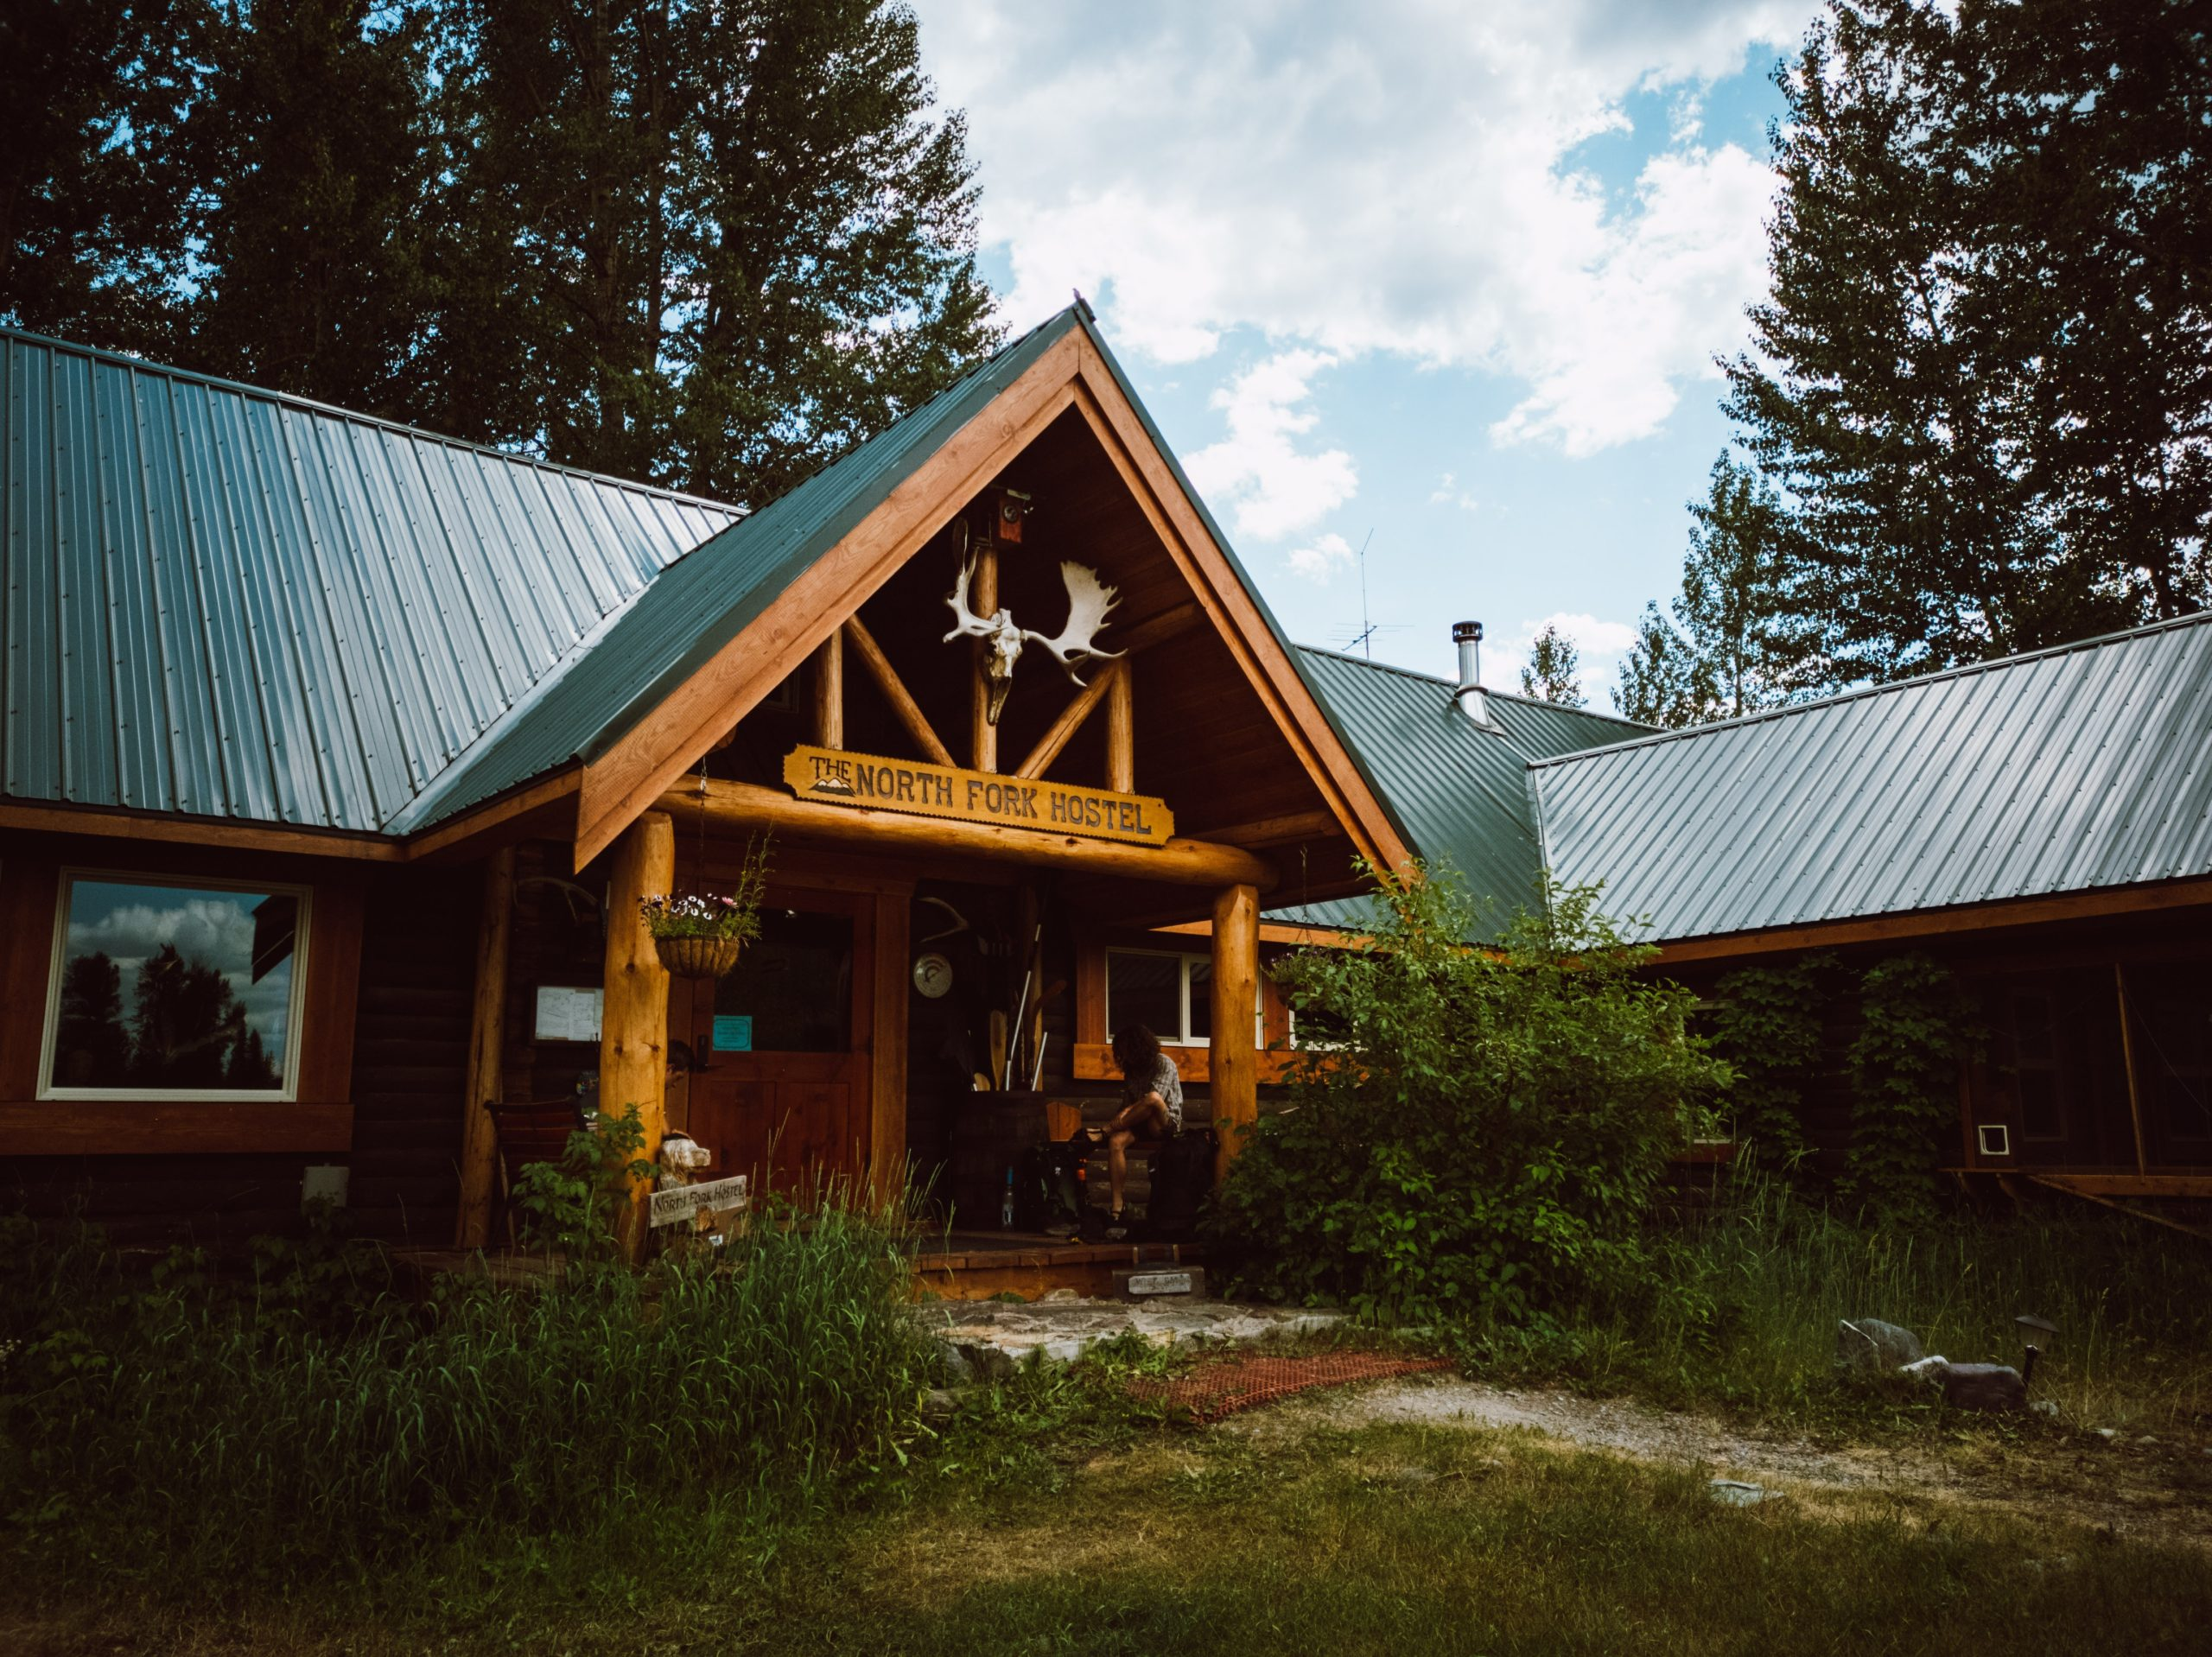 A picture of the North Fork Hostel. It has ana-frame porch with a green metal roof and moose antlers attached to the roof of the porch.